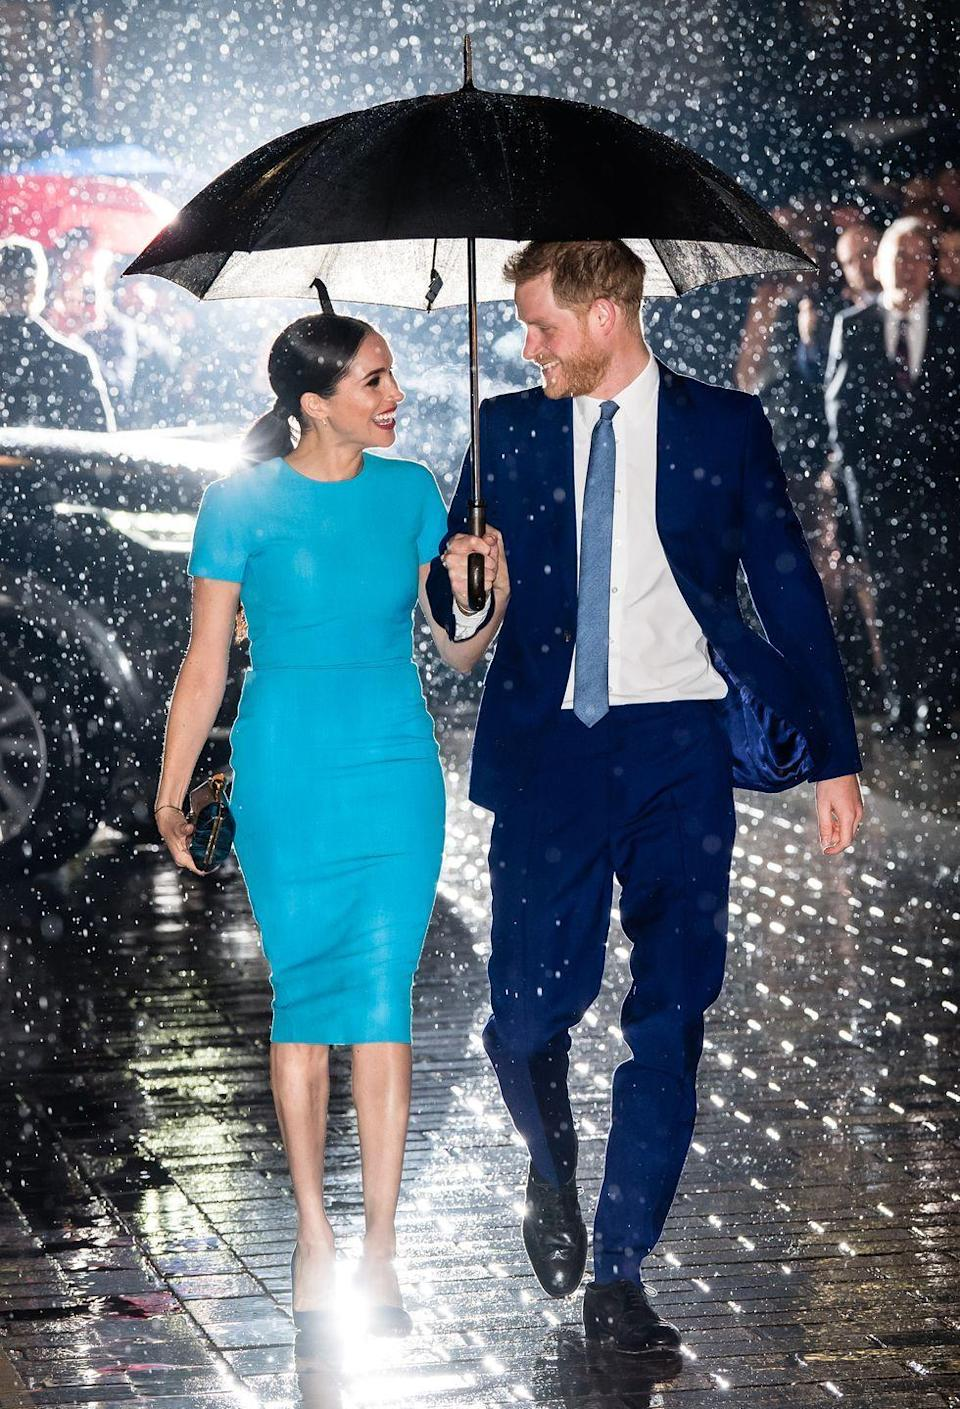 <p>Prince Harry and Meghan arrived at the Endeavor Fund Awards amid a downpour, making for some dramatic photos.</p>